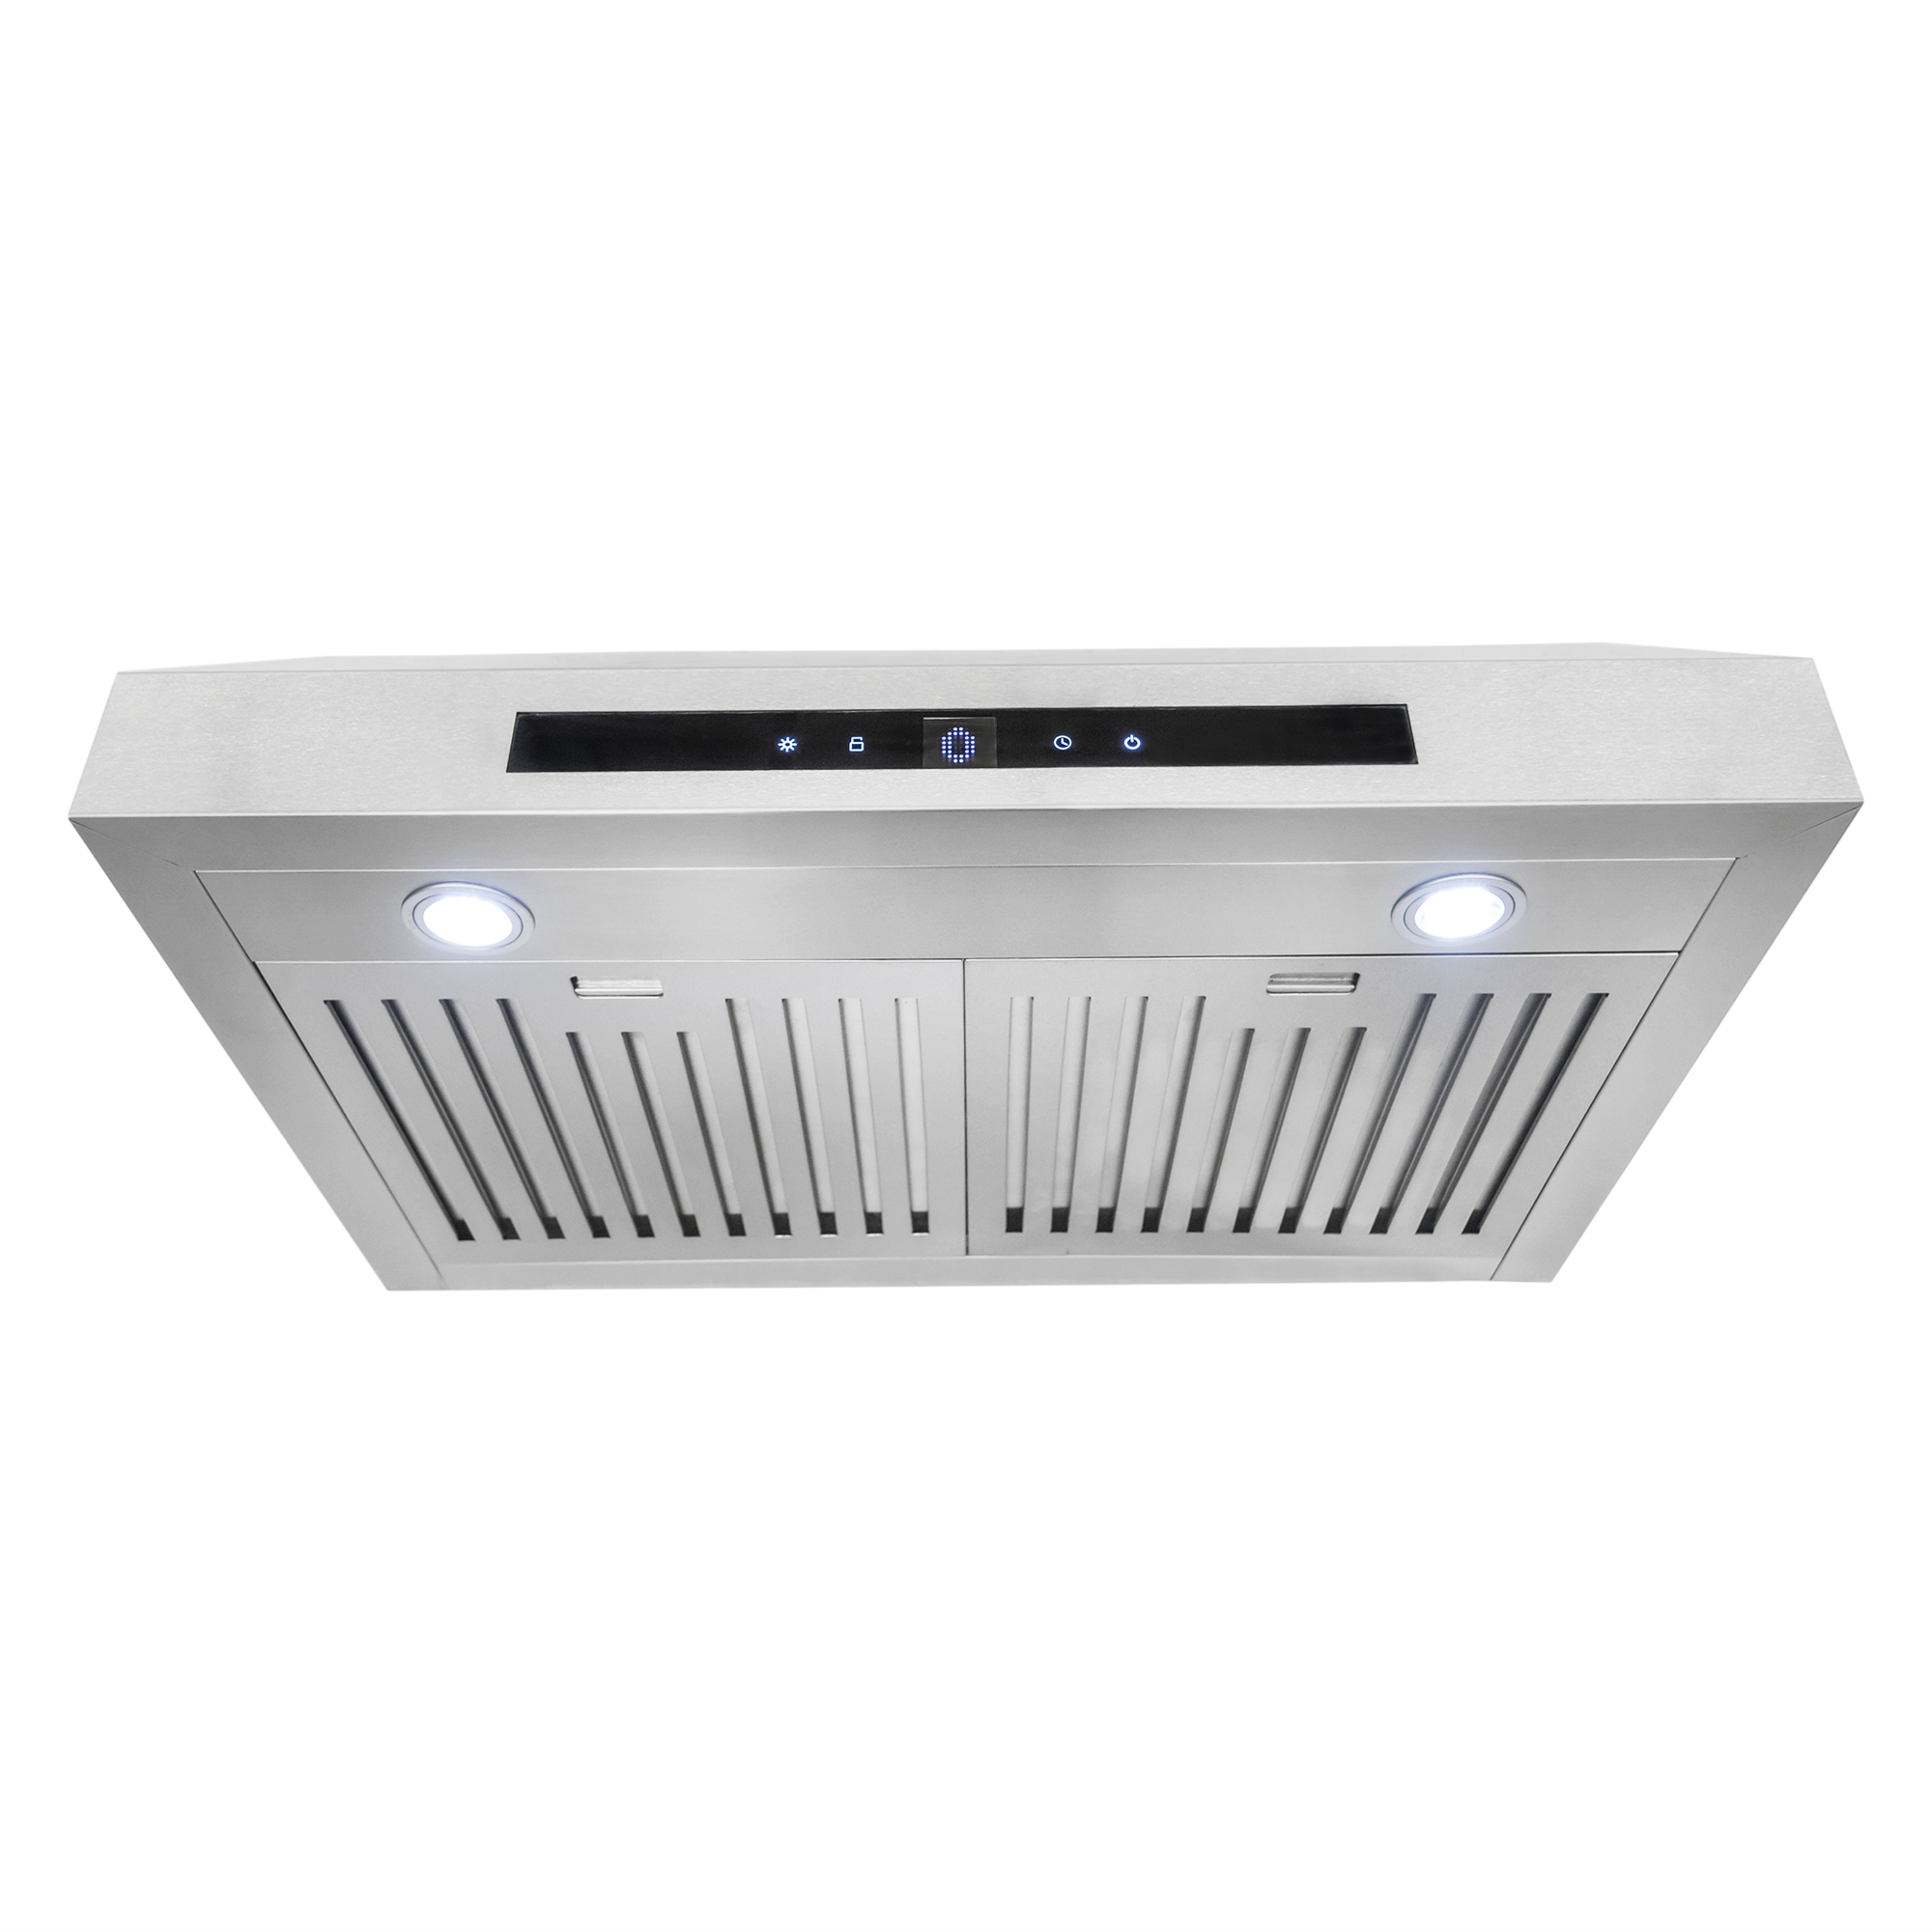 30 in under cabinet range hood cosmo appliances umc30 - Kitchen hood under cabinet ...